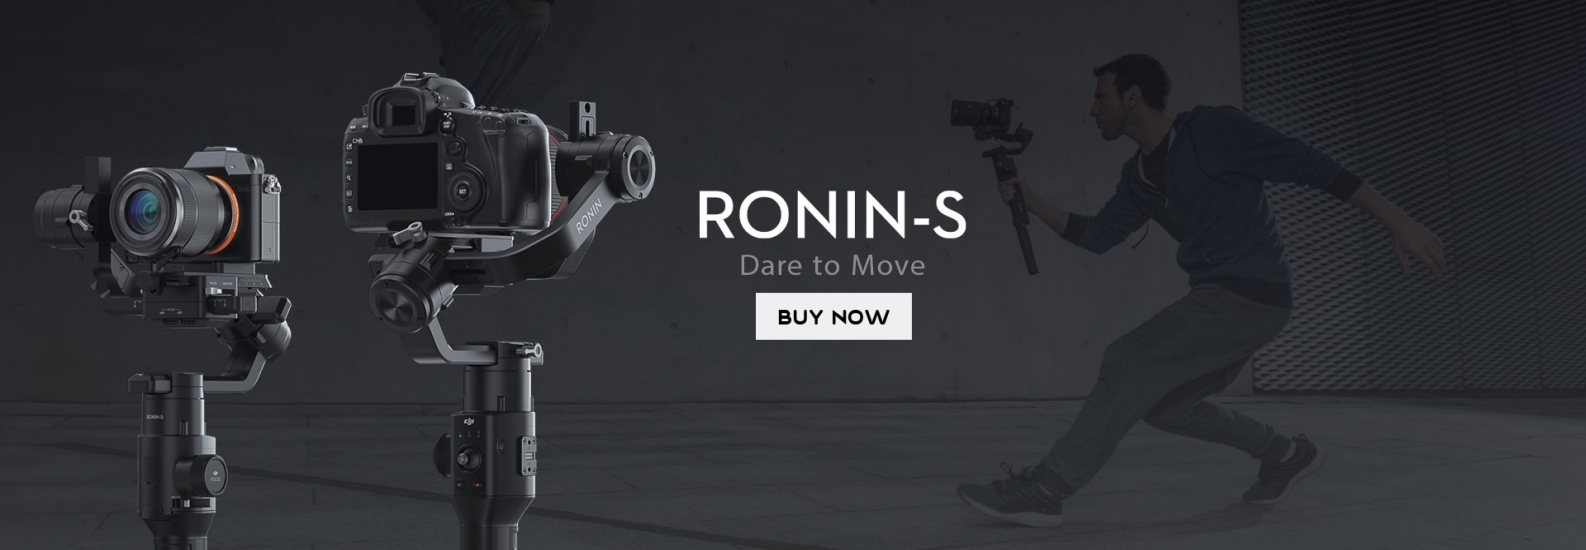 https://www.algadgets.com/uae/dji-ronin-s-dubai-uae